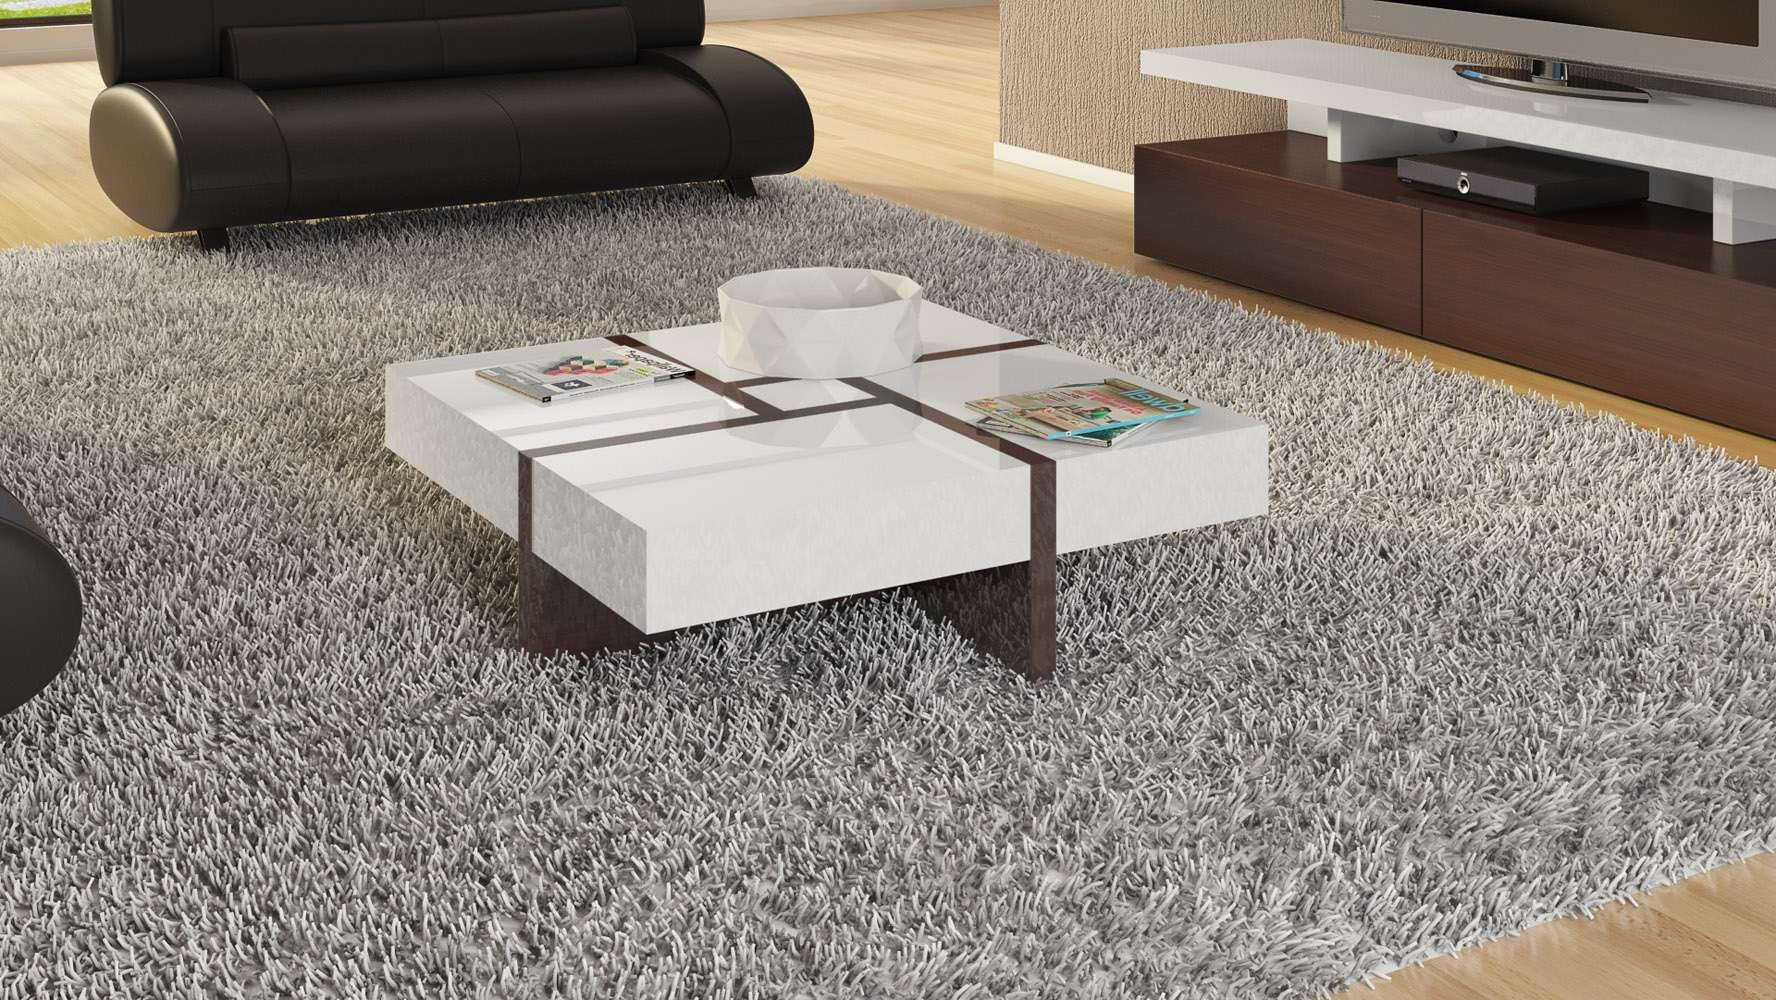 Mcintosh High Gloss Coffee Table With Storage – White Square Within Recent Gloss Coffee Tables (View 6 of 20)